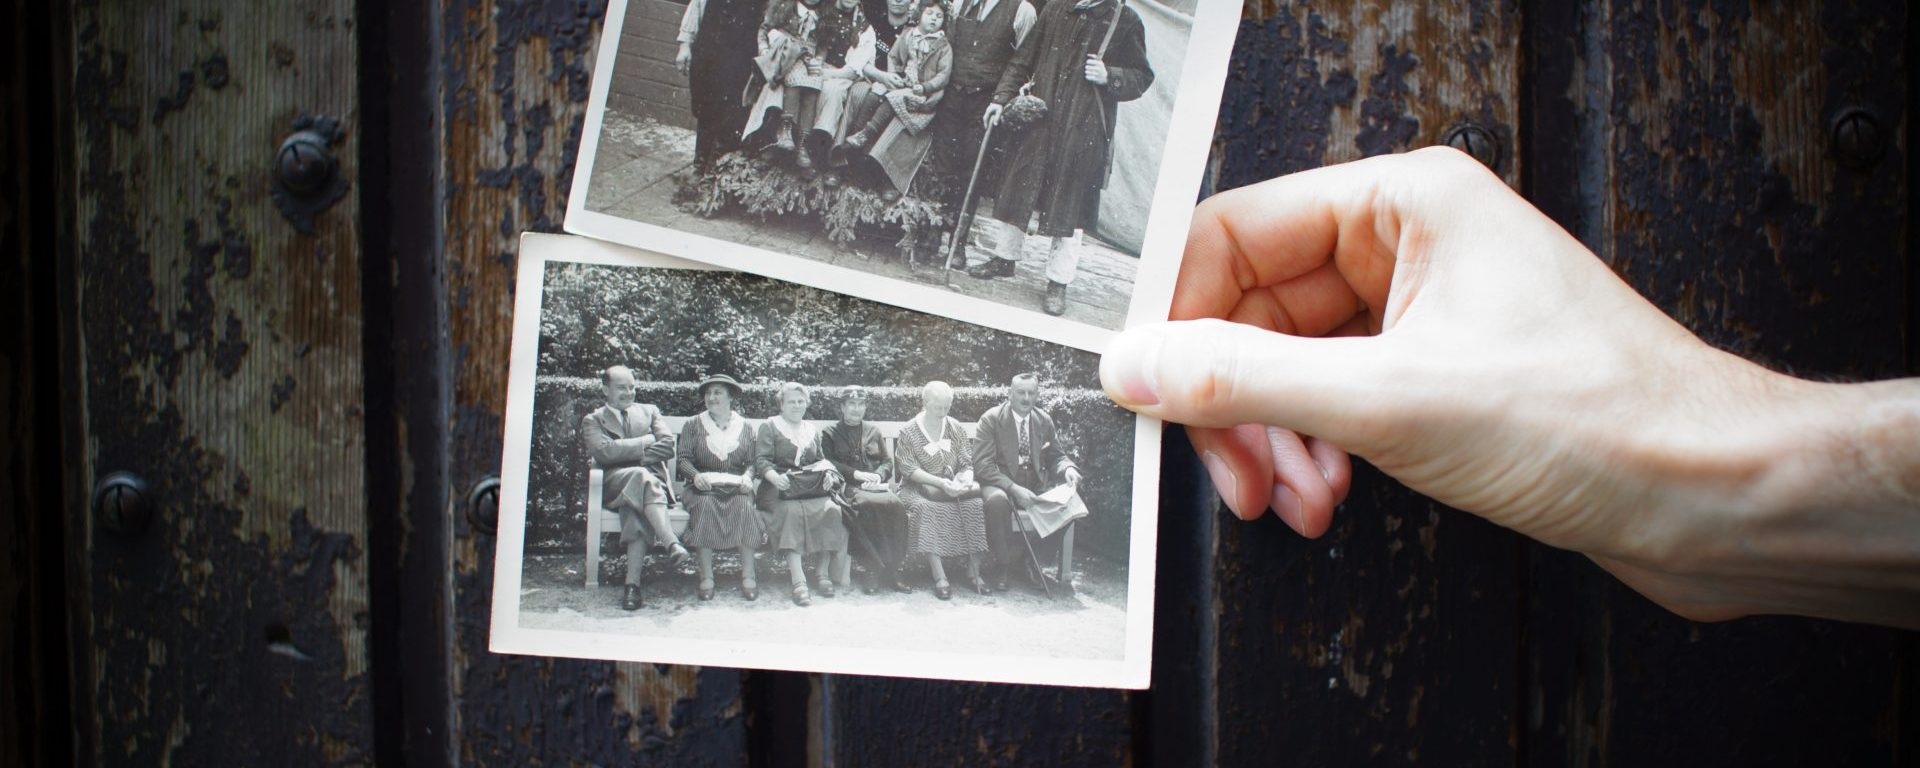 a person holding two photos for a slideshow